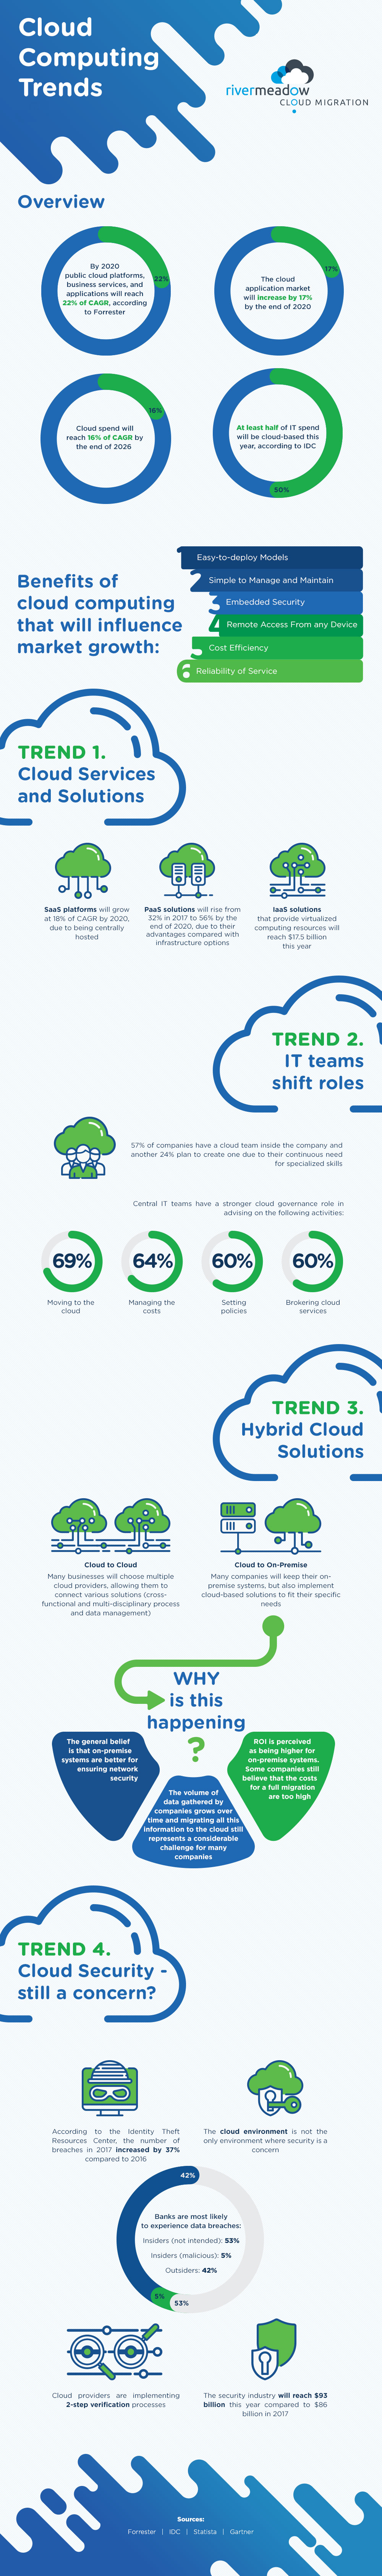 Cloud Computing Trends infographic